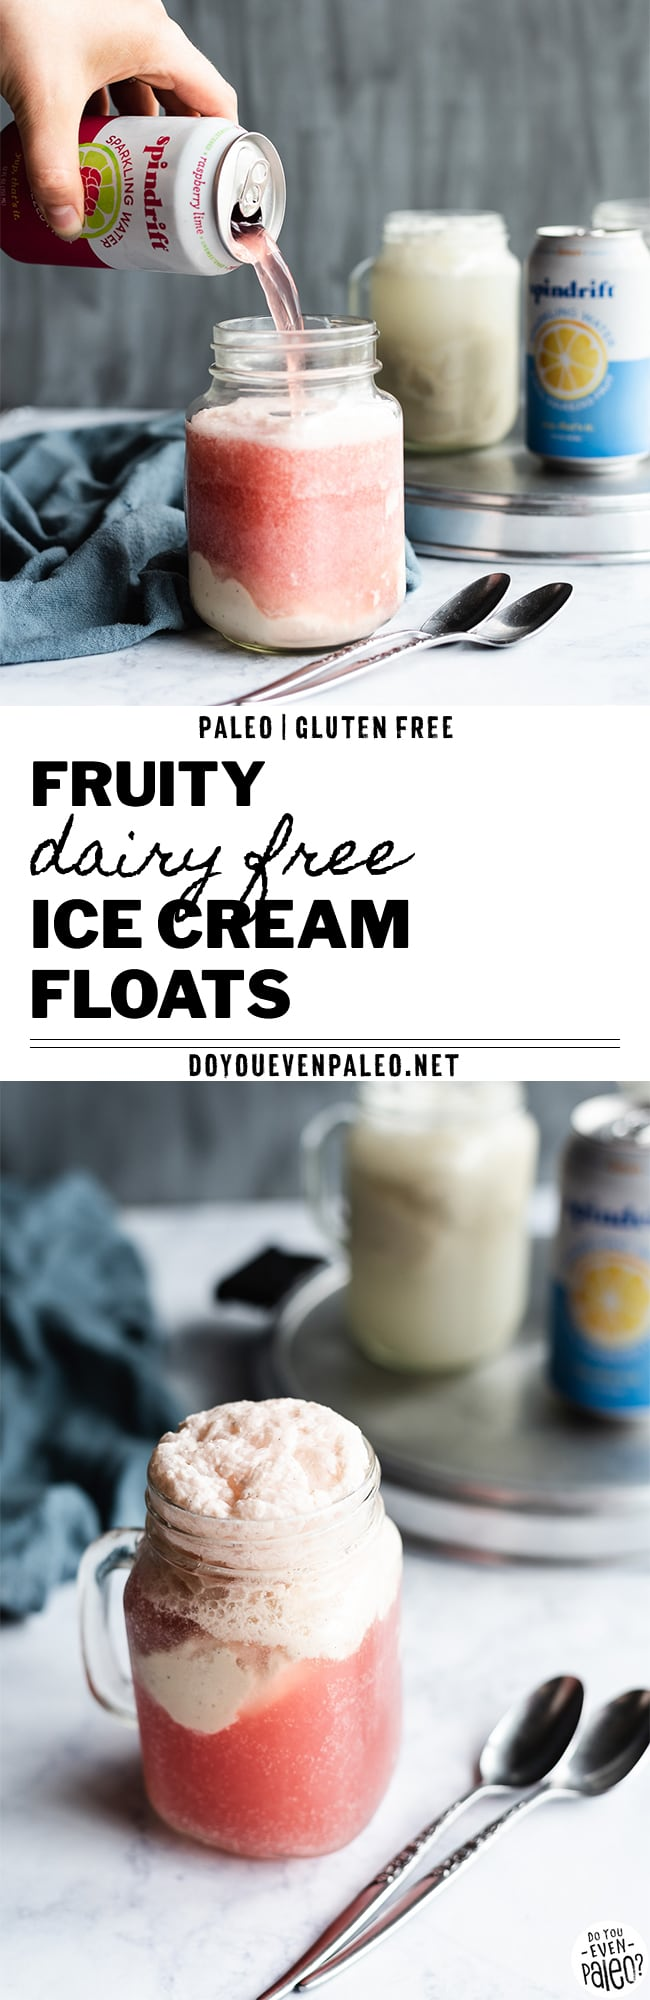 Fruity Paleo Dairy Free Ice Cream Floats Recipe